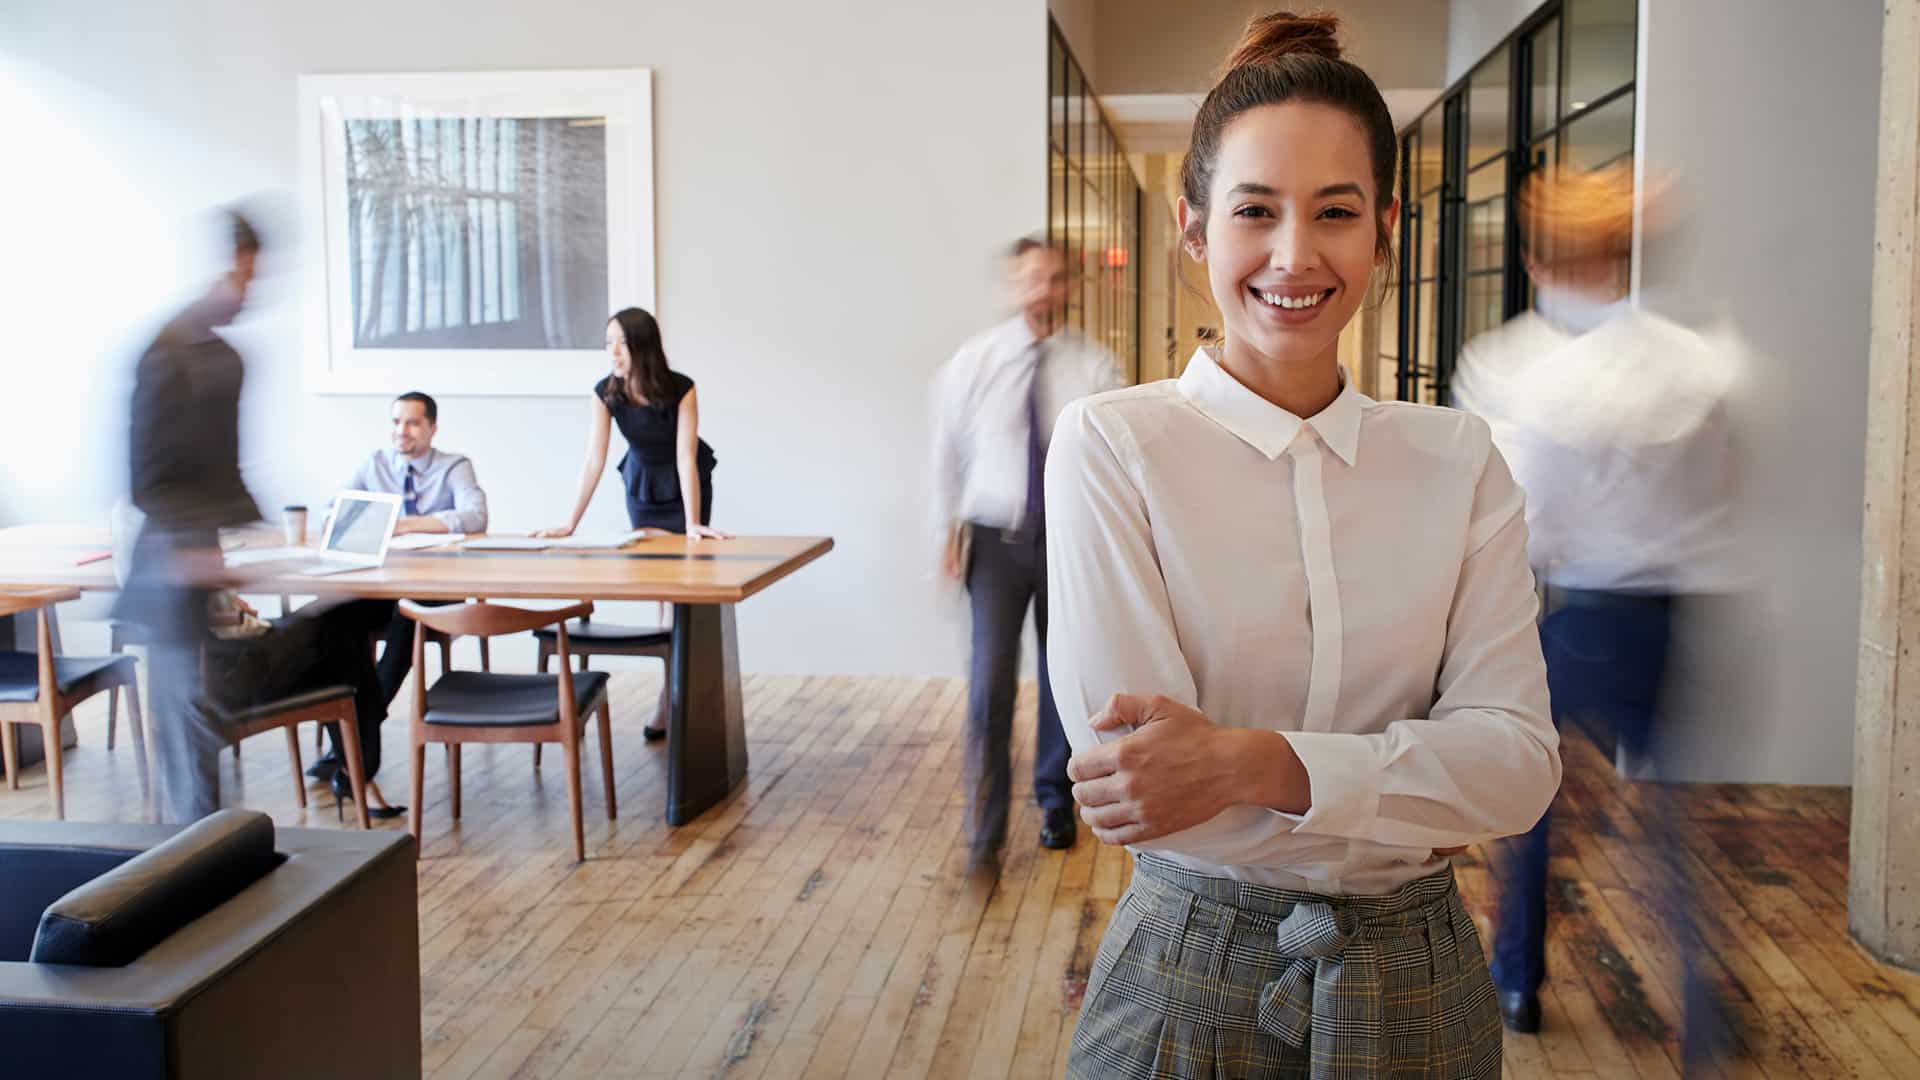 Noisy and distracting offices are unproductive